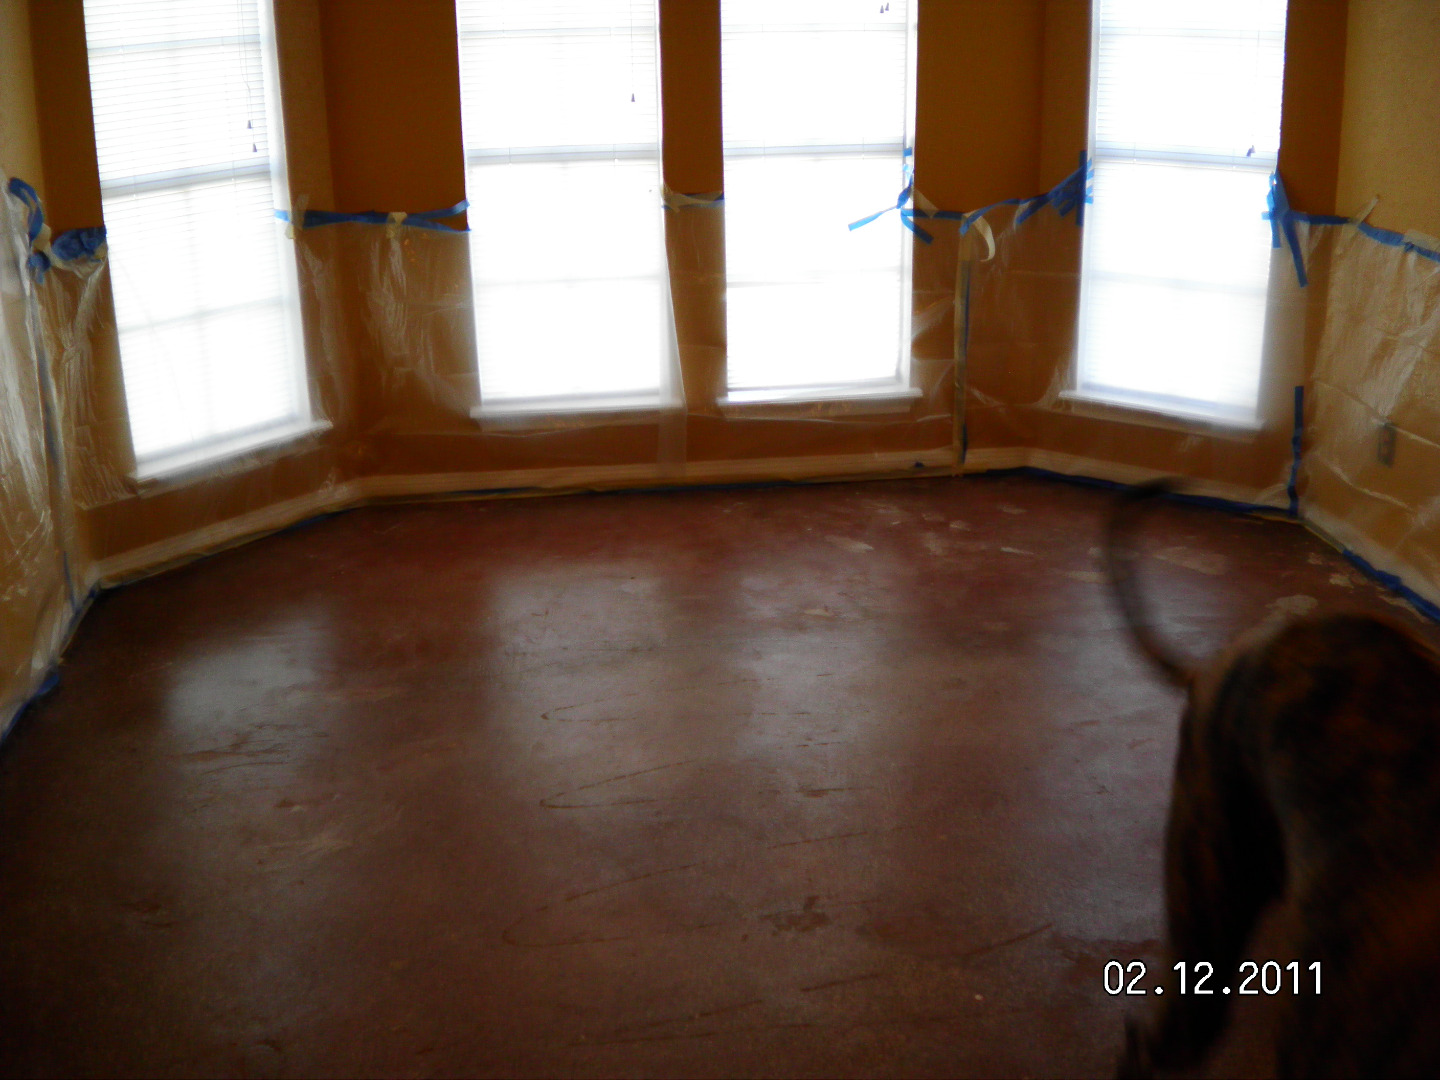 Picture of To Stain Your Floors - Protect Your Walls!